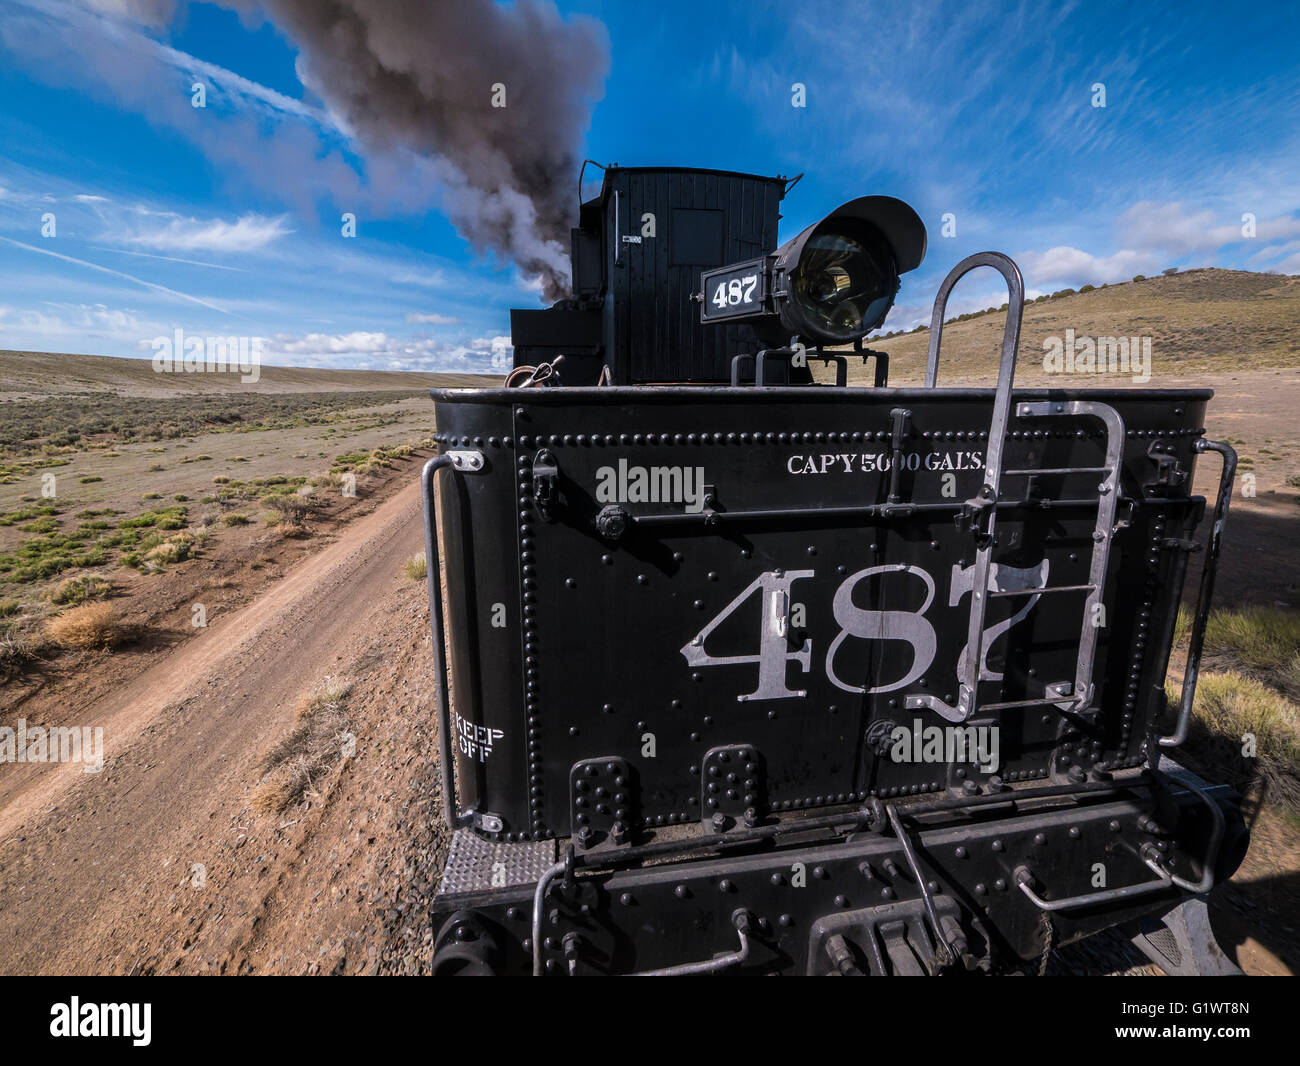 Locomotive 487 runs the tracks west from Antonito, Cumbres & Toltec Scenic Railroad between Chama, New Mexico - Stock Image